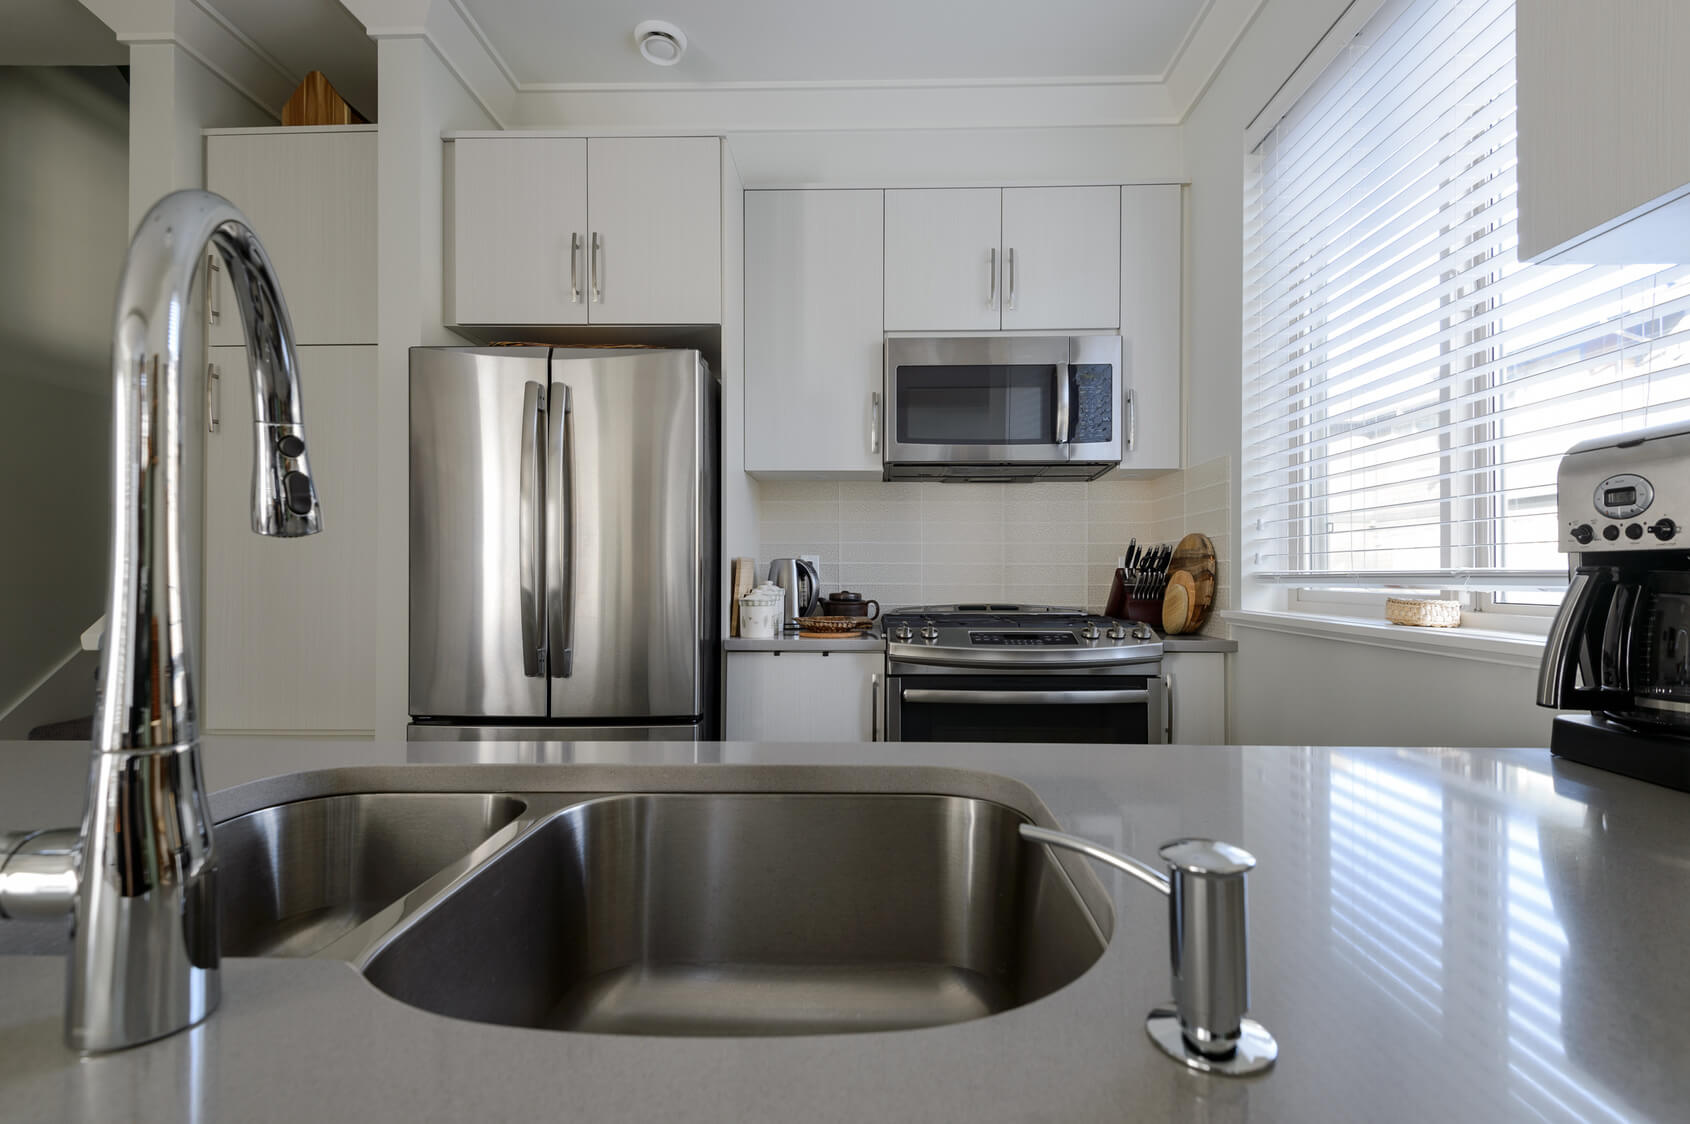 What comes first appliances or the kitchen design